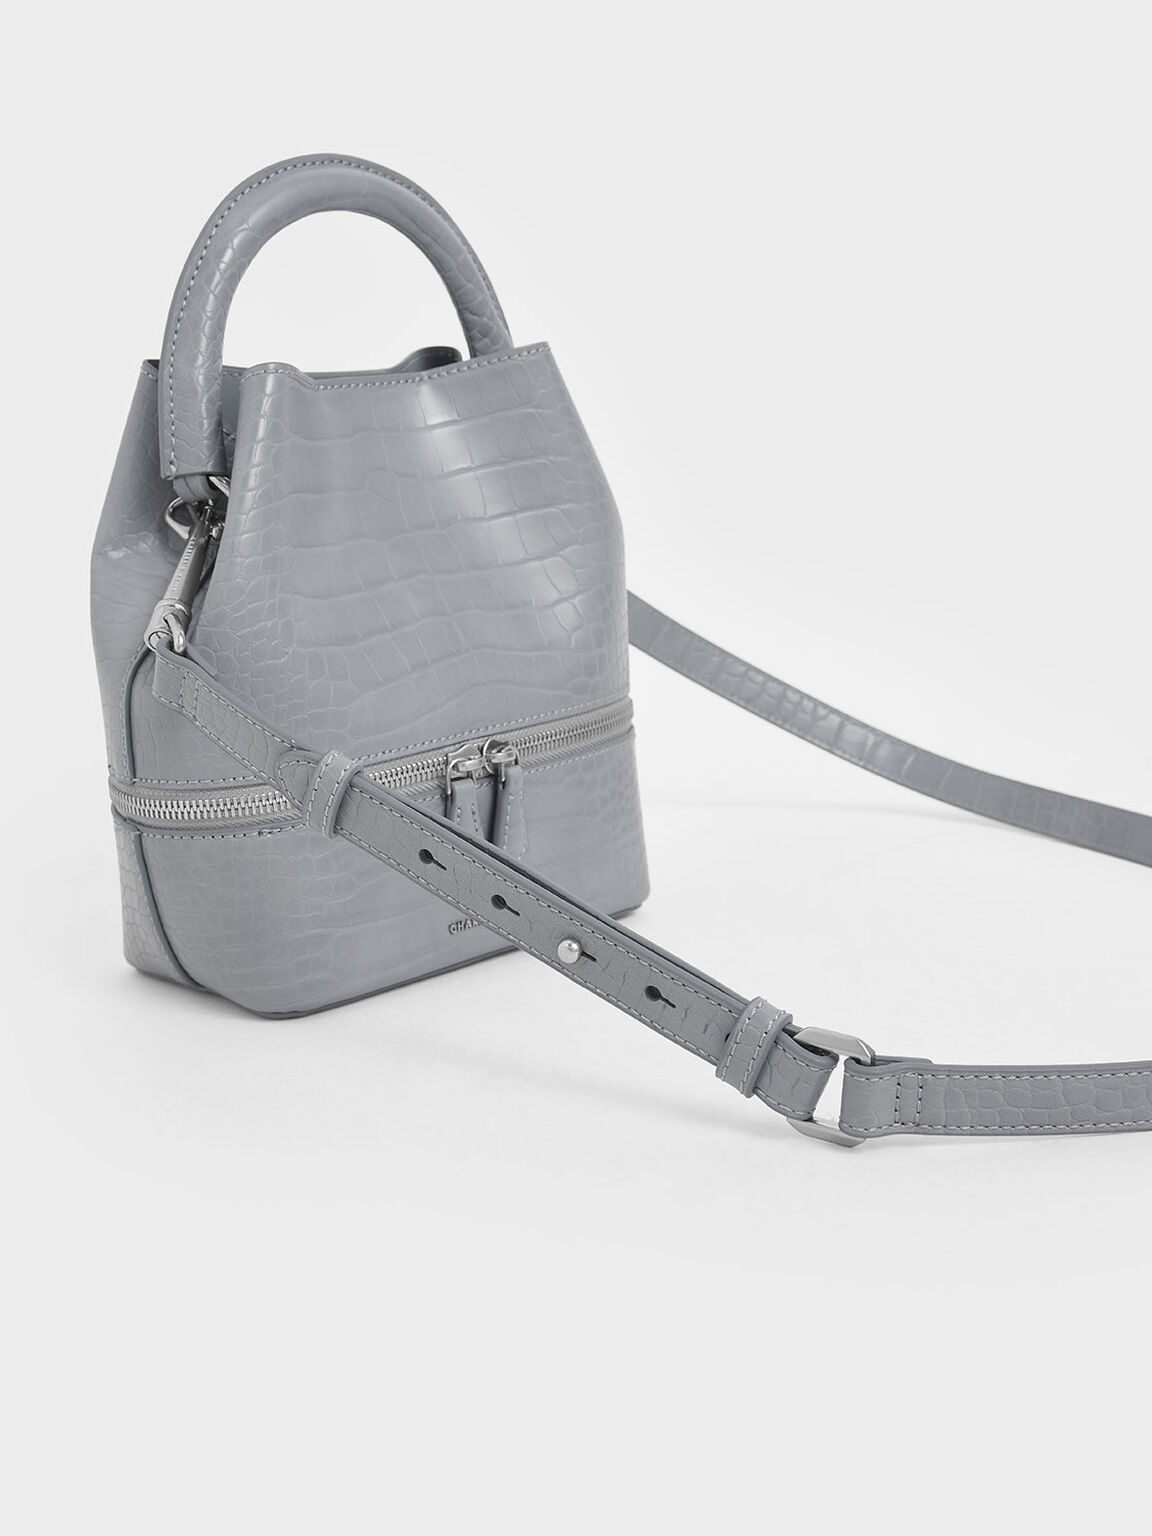 Croc-Effect Two-Way Zip Bucket Bag, Grey, hi-res